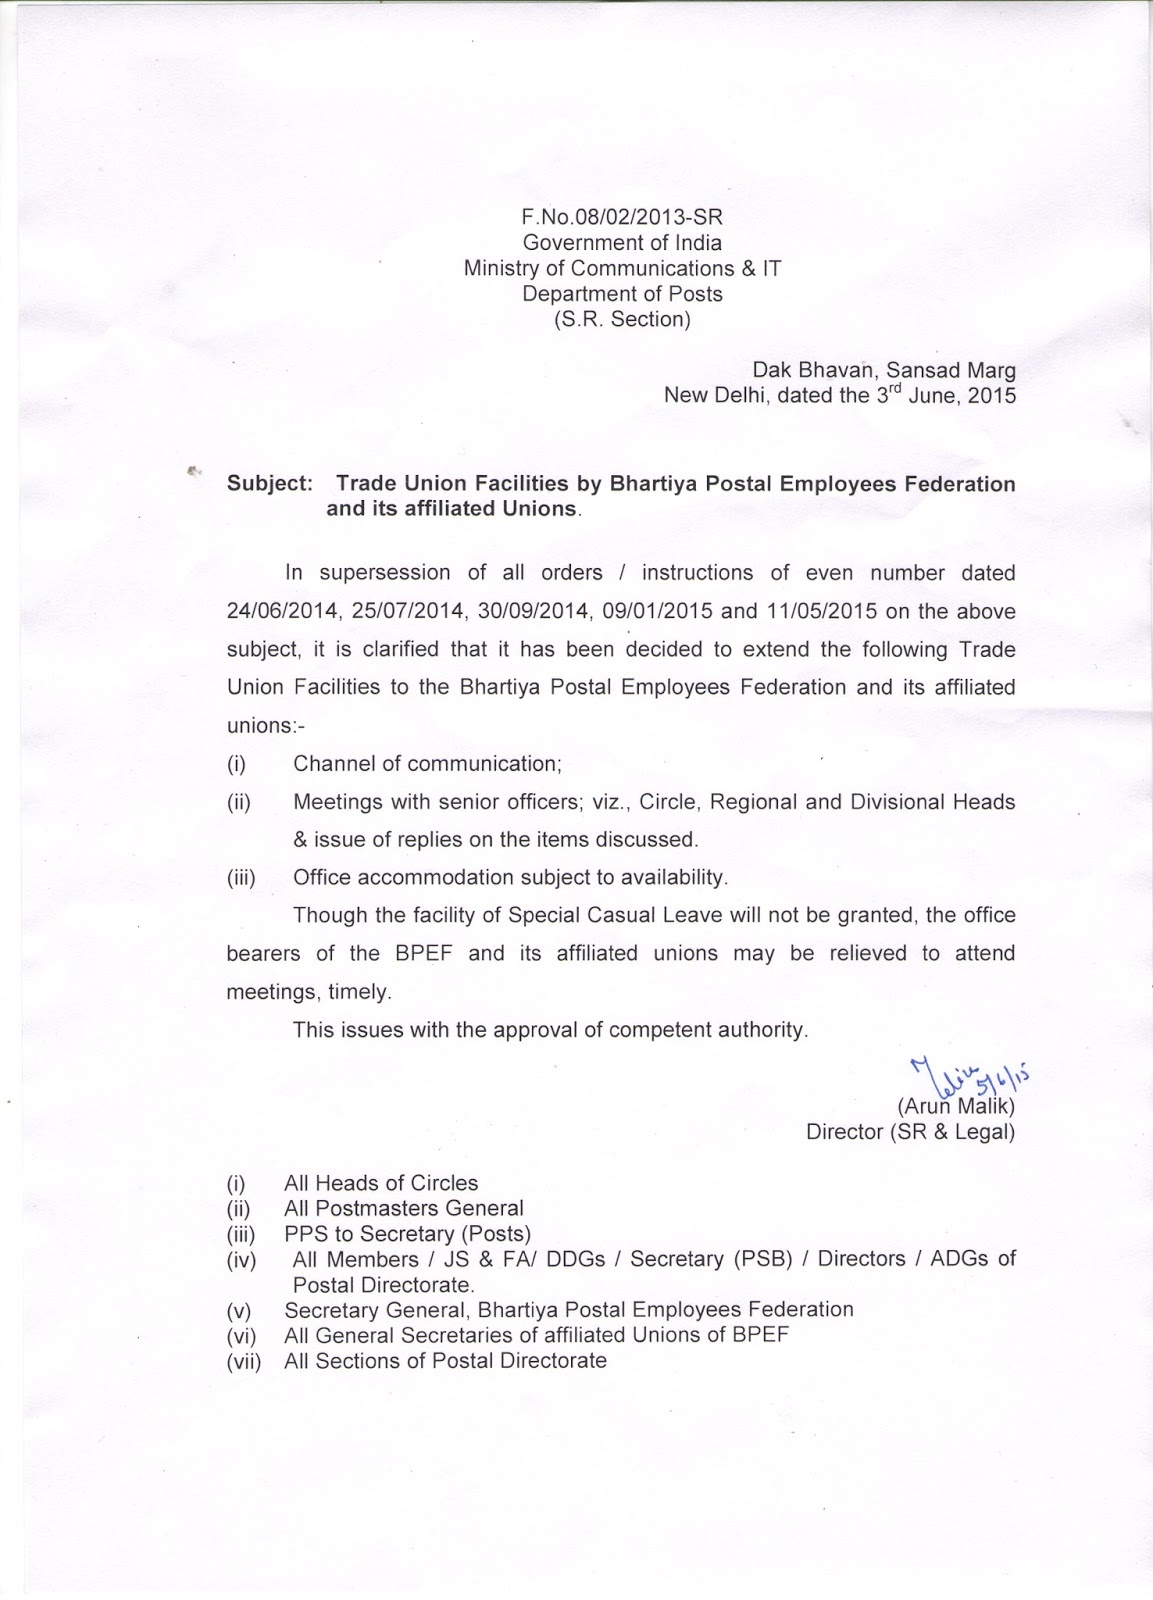 bharatiya postal employees federation  trade union facilities by bharatiya postal employees federation and its affiliated unions clarification